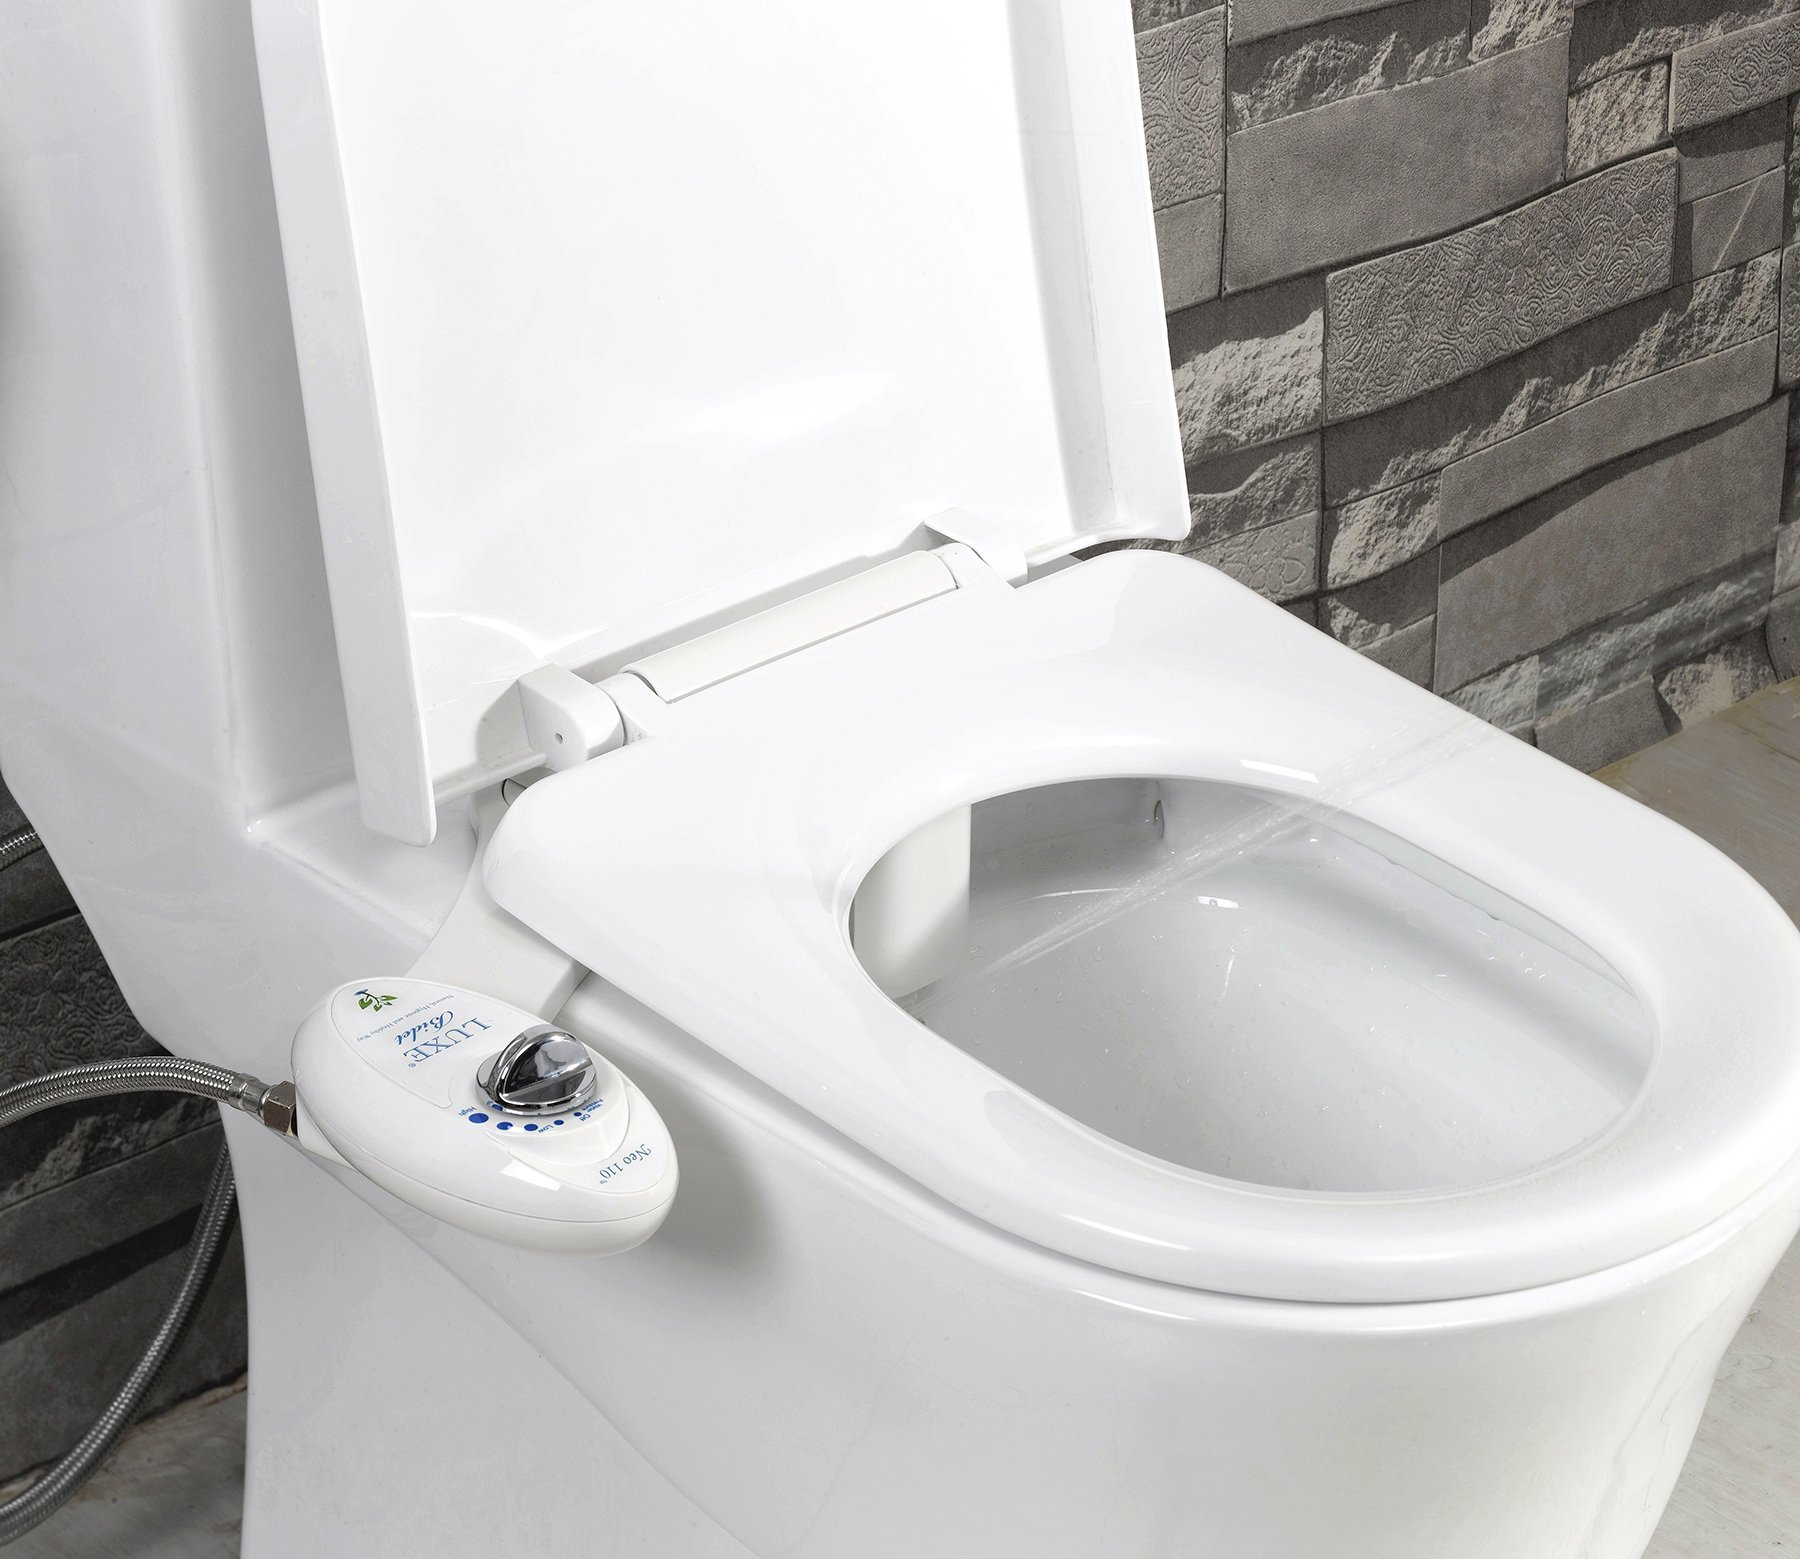 Luxe Bidet Neo 110 - Fresh Water Non-Electric Mechanical Bidet Toilet Seat Attachment (white and white) by LUXE Bidet (Image #2)